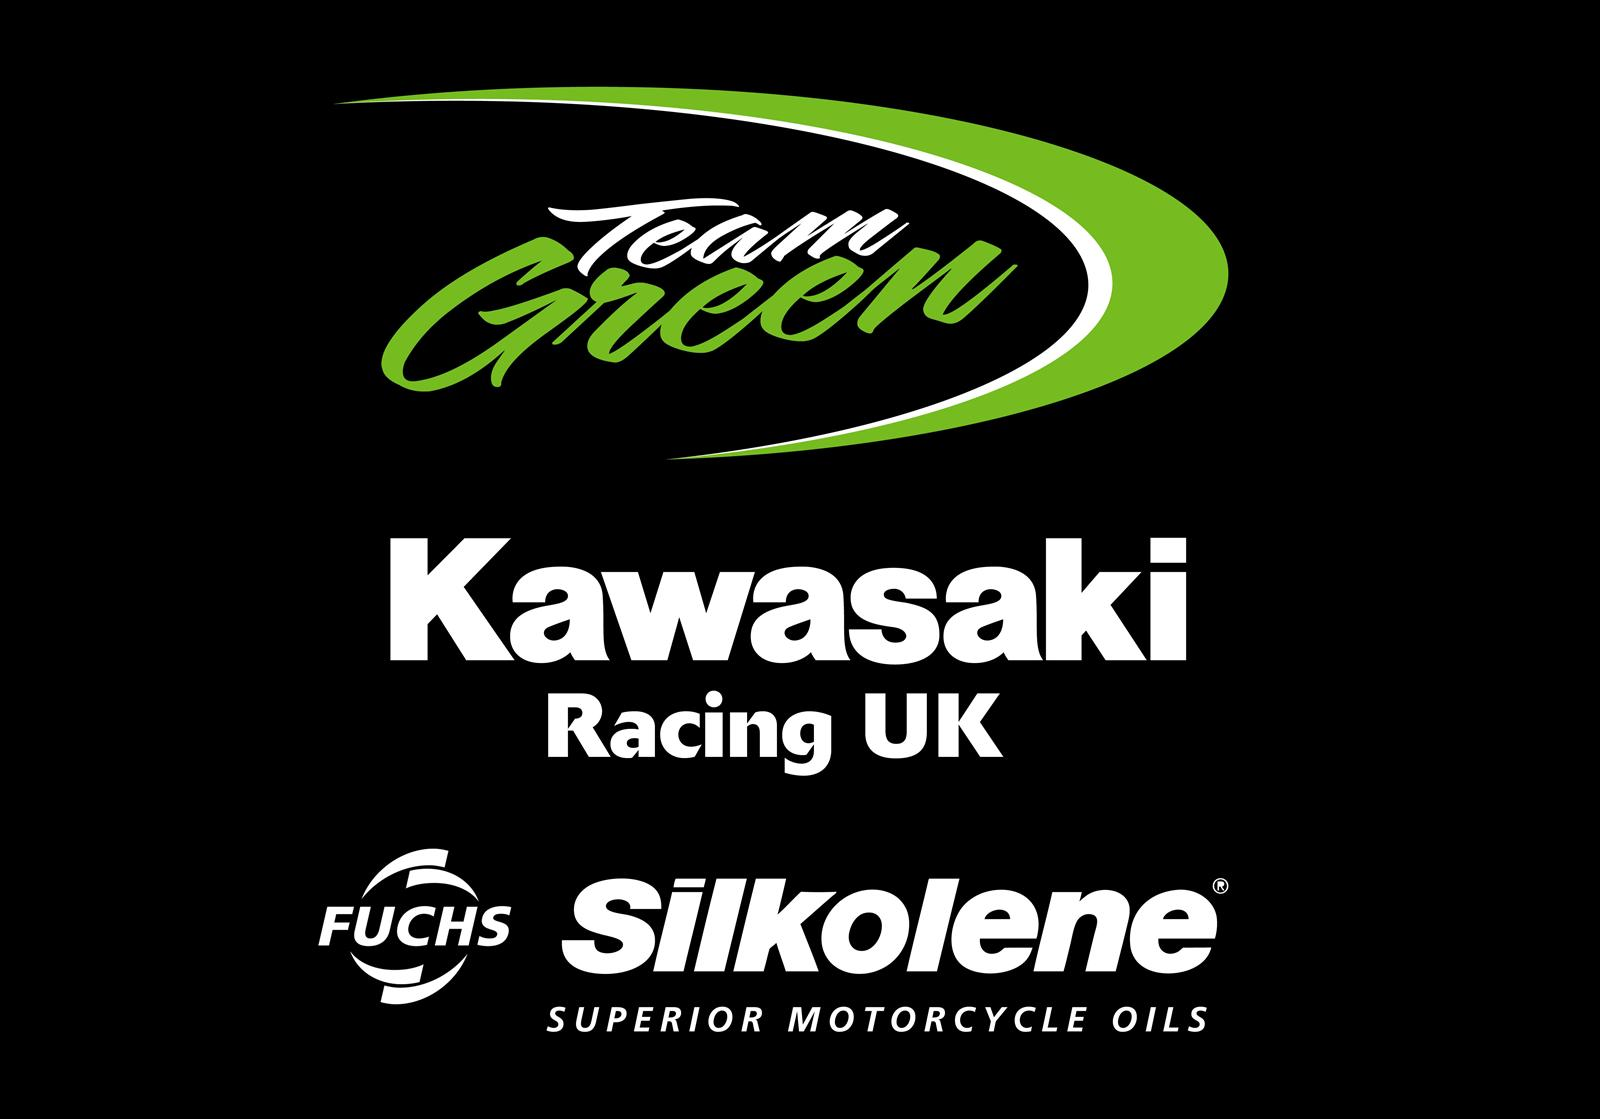 Kawasaki Motors UK joins Forces With Fuchs Silkolene